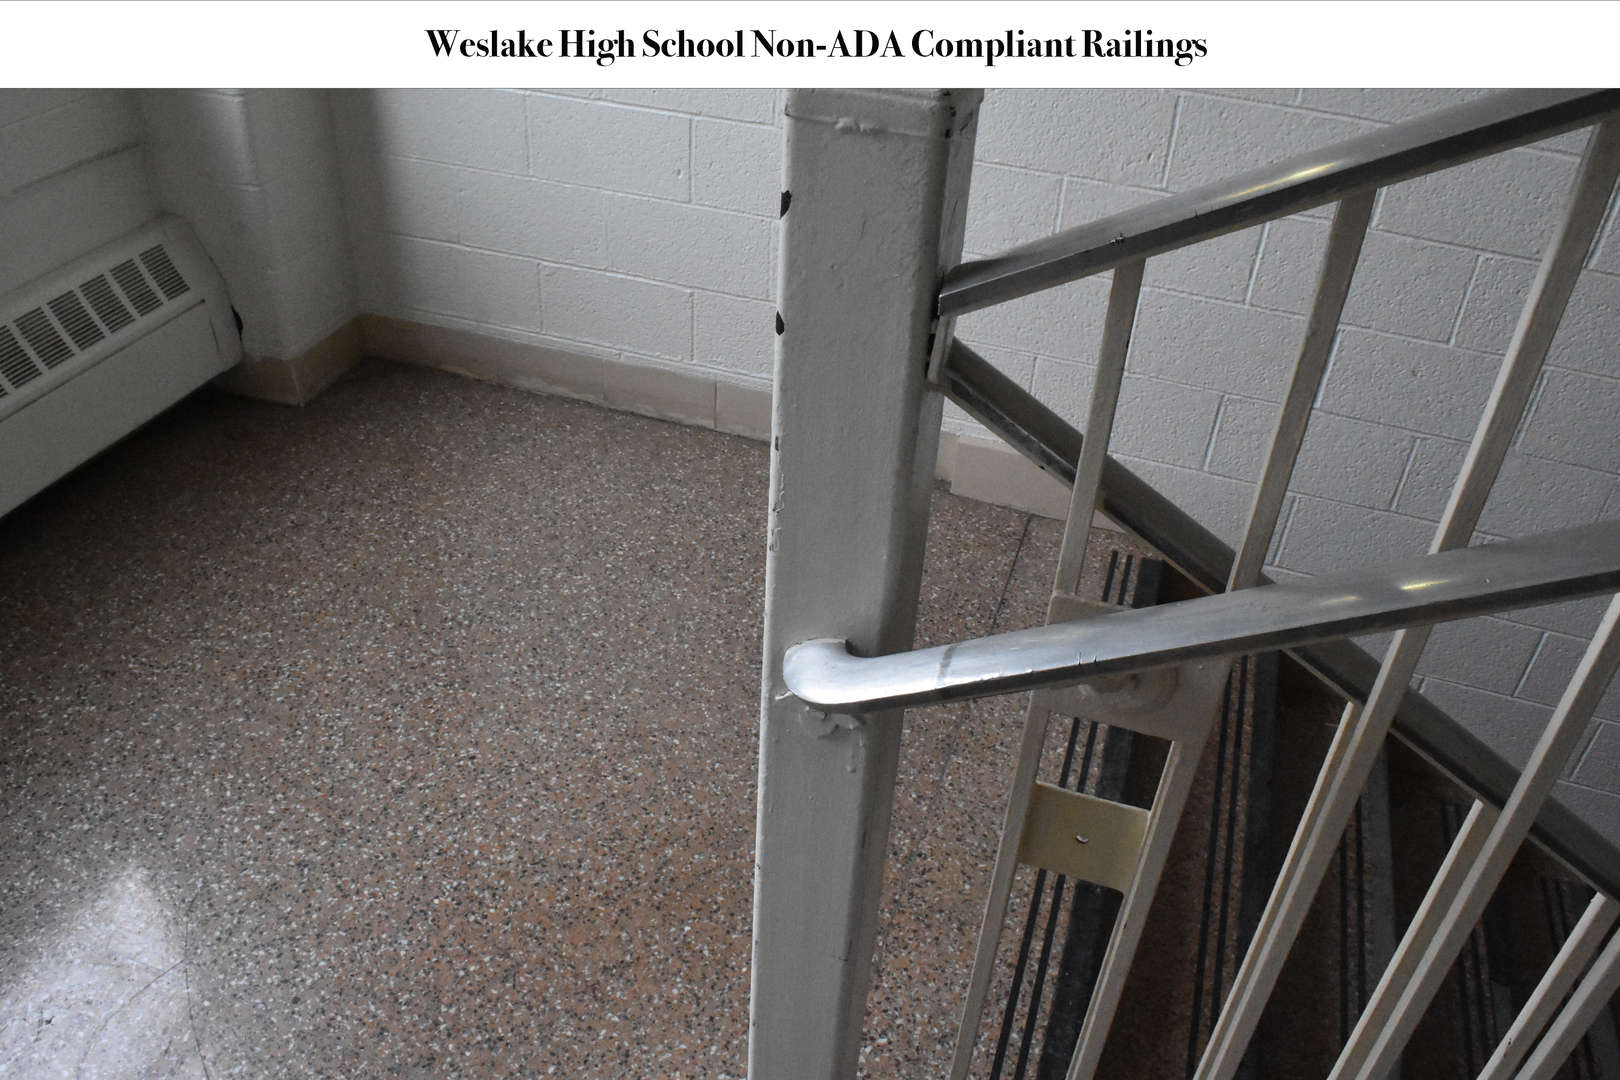 Handrails in WHS stairwells